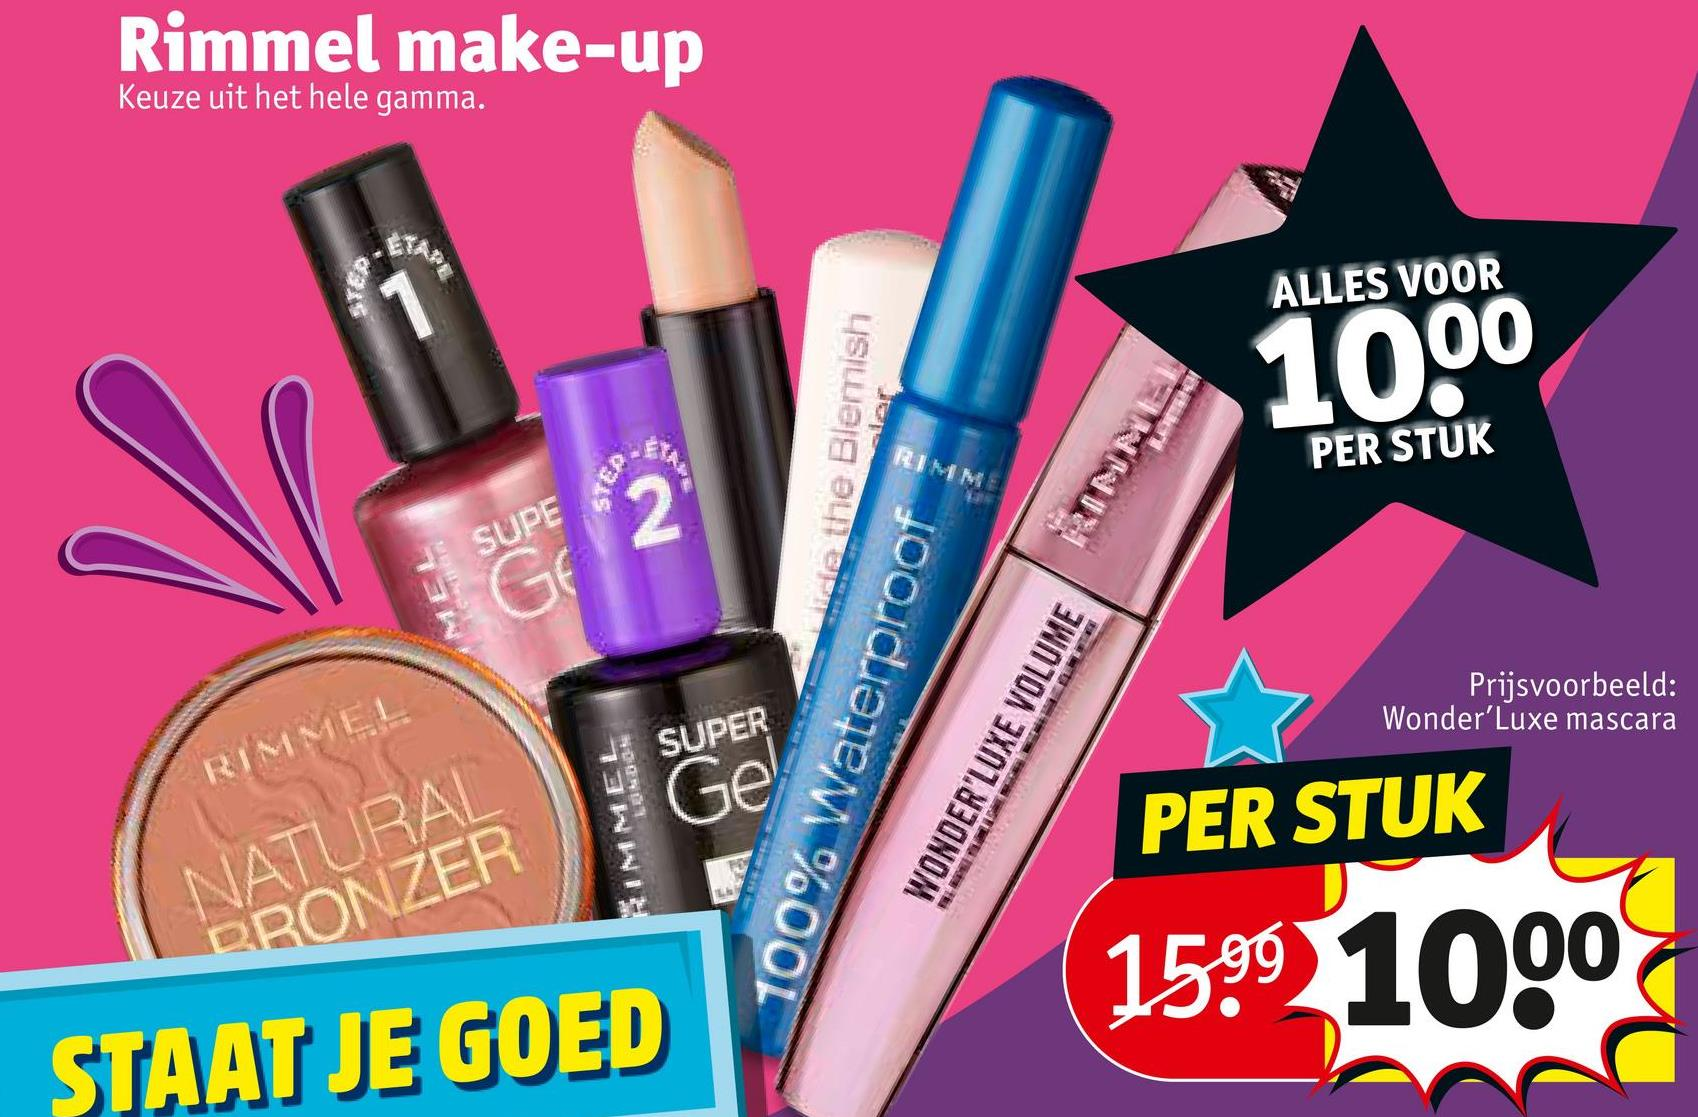 Rimmel make-up Keuze uit het hele gamma. ALLES VOOR 1000 Ide the Blemish PER STUK PER STUK SUPE Prijsvoorbeeld: Wonder'Luxe mascara SUPER RIMMEL 100% Waterproof WONDER'LUXE VOLUME ONNI PER STUK NATURAL DRONZER 1599 1000 STAAT JE GOED